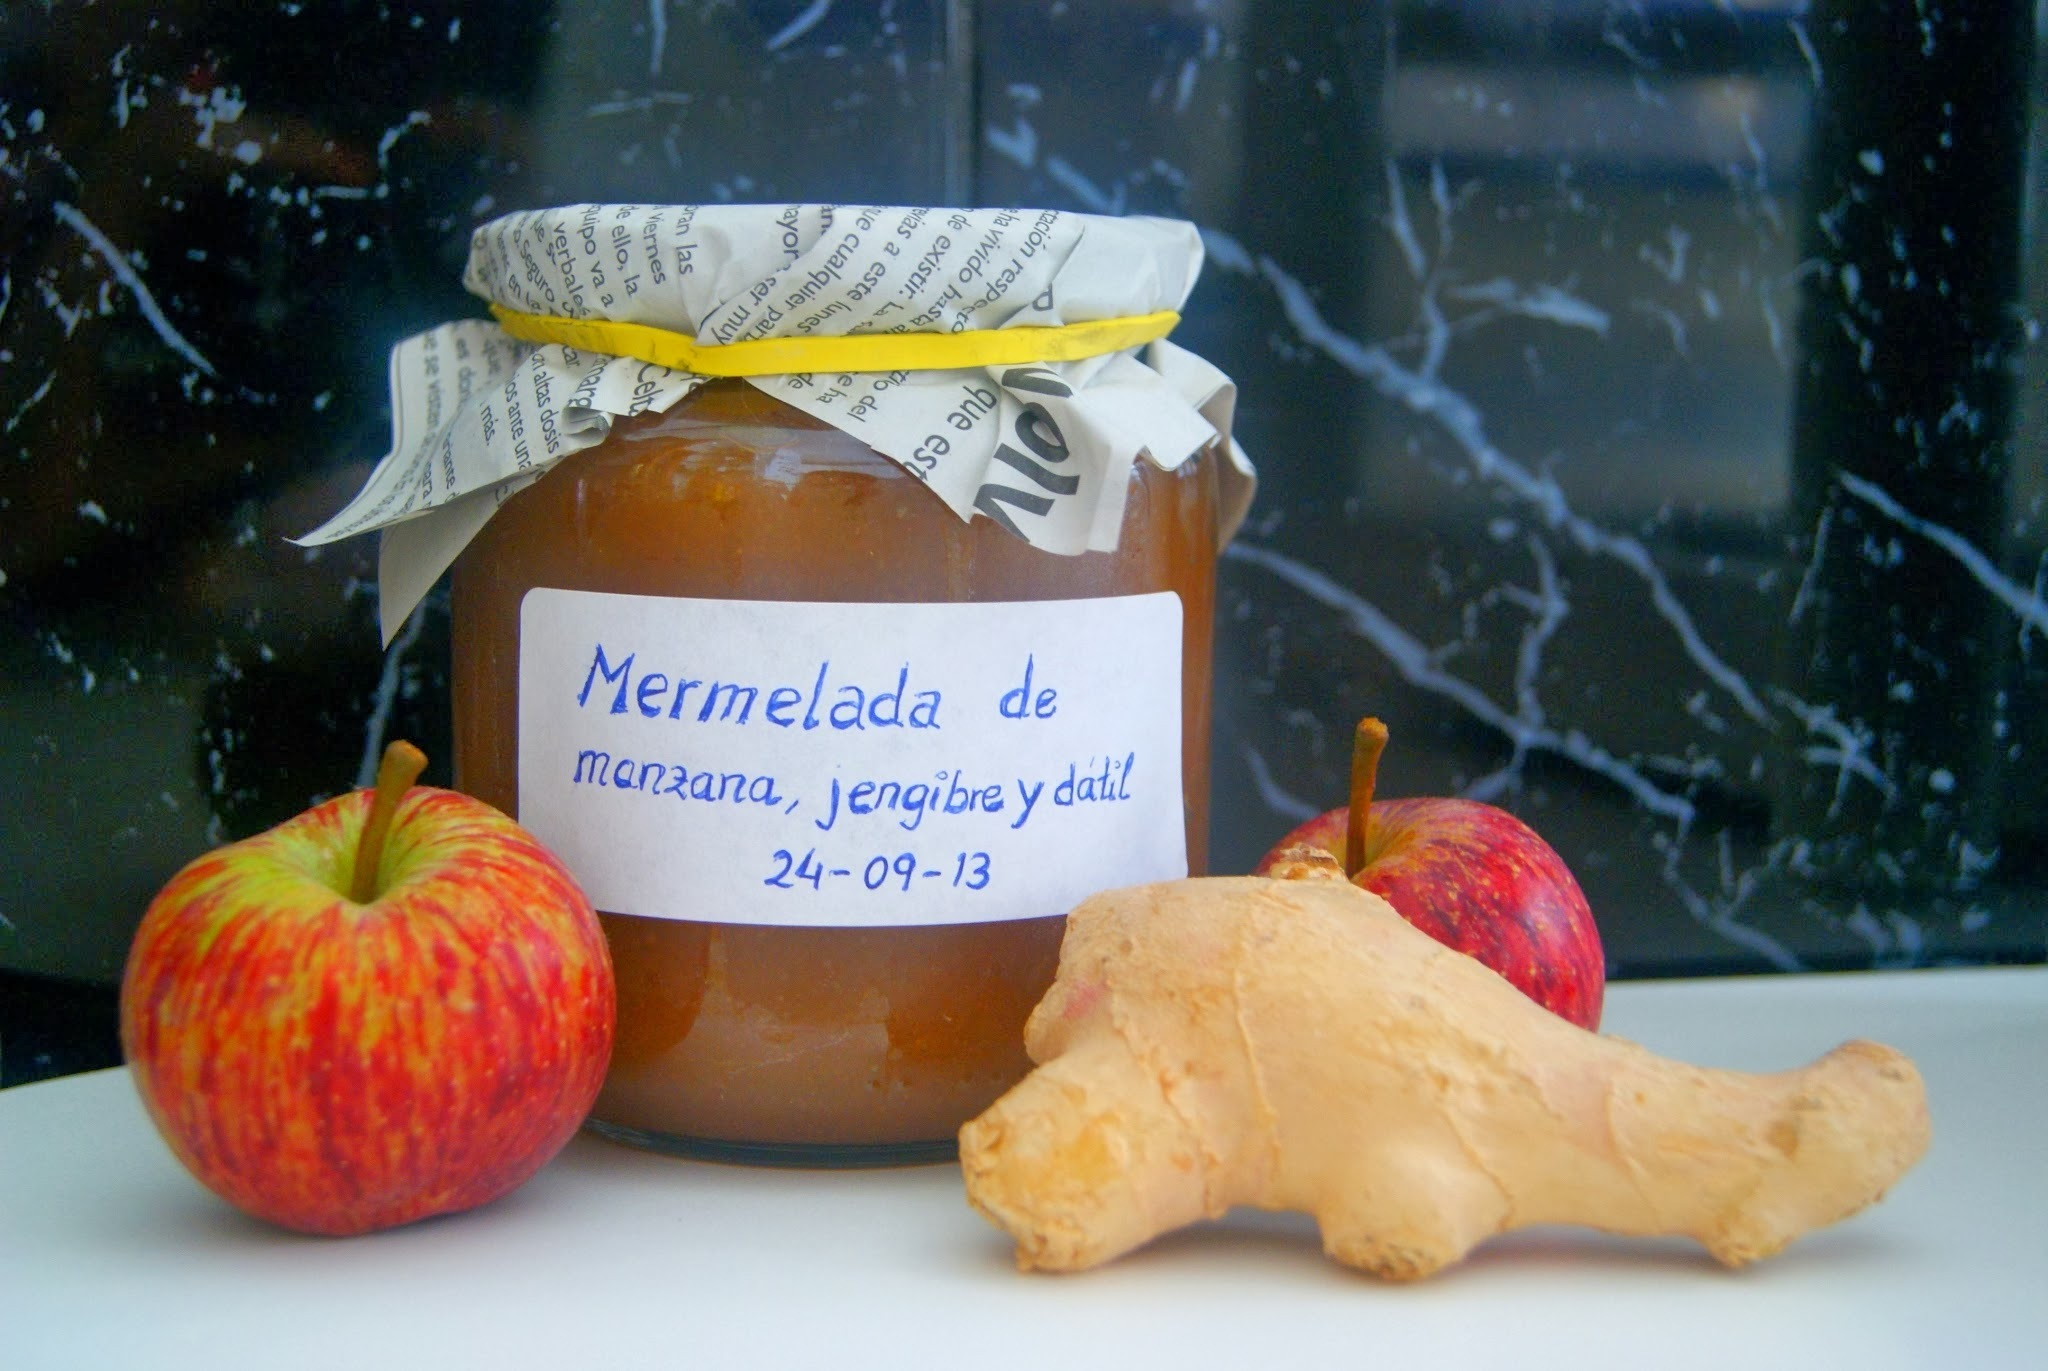 Mermelada de Manzana, Jengibre y Datil